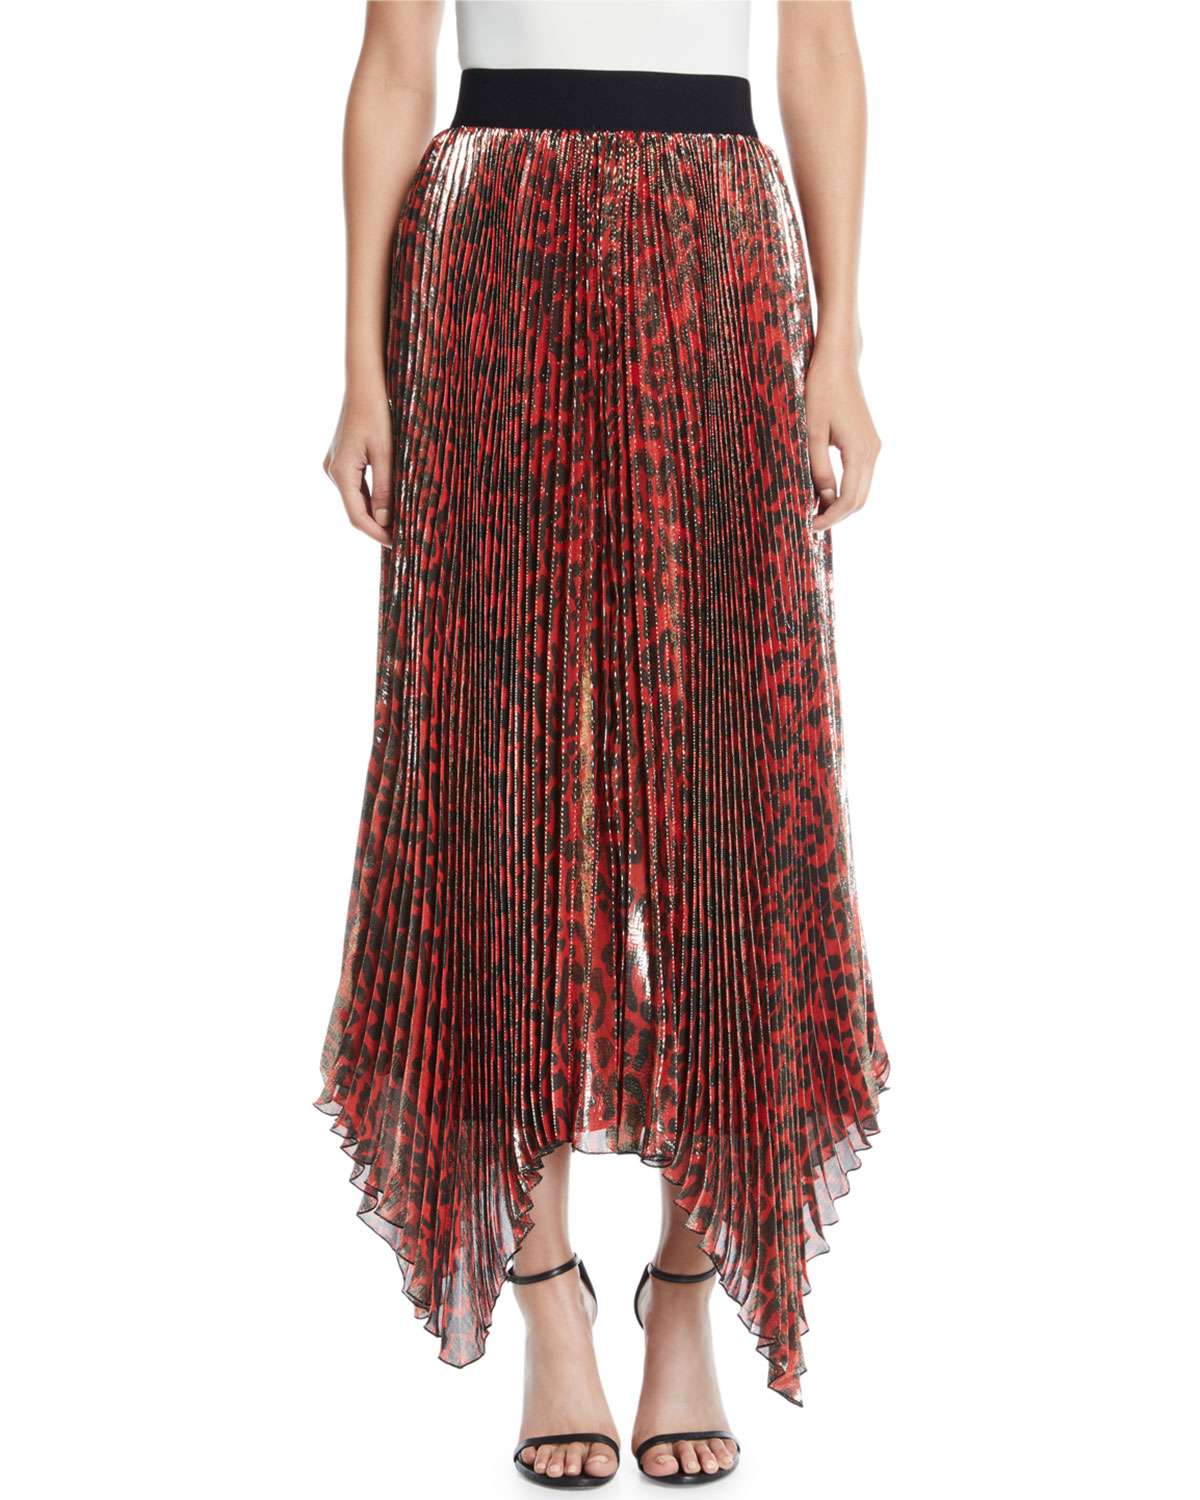 Katz Shimmery Leopard Pleated Maxi Skirt